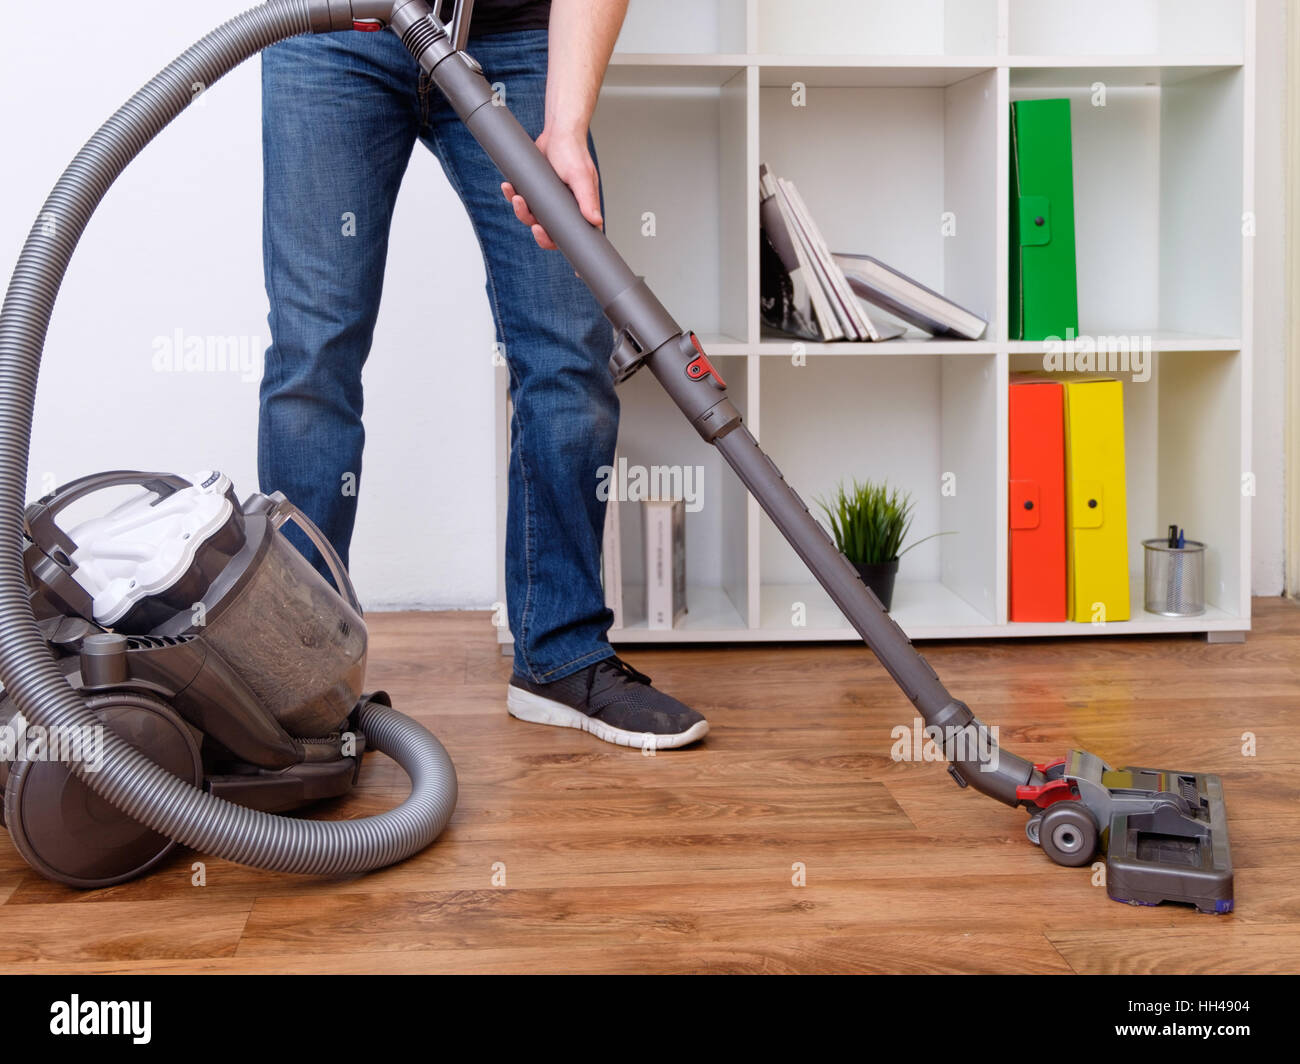 Hoovering a parquet floor - Stock Image